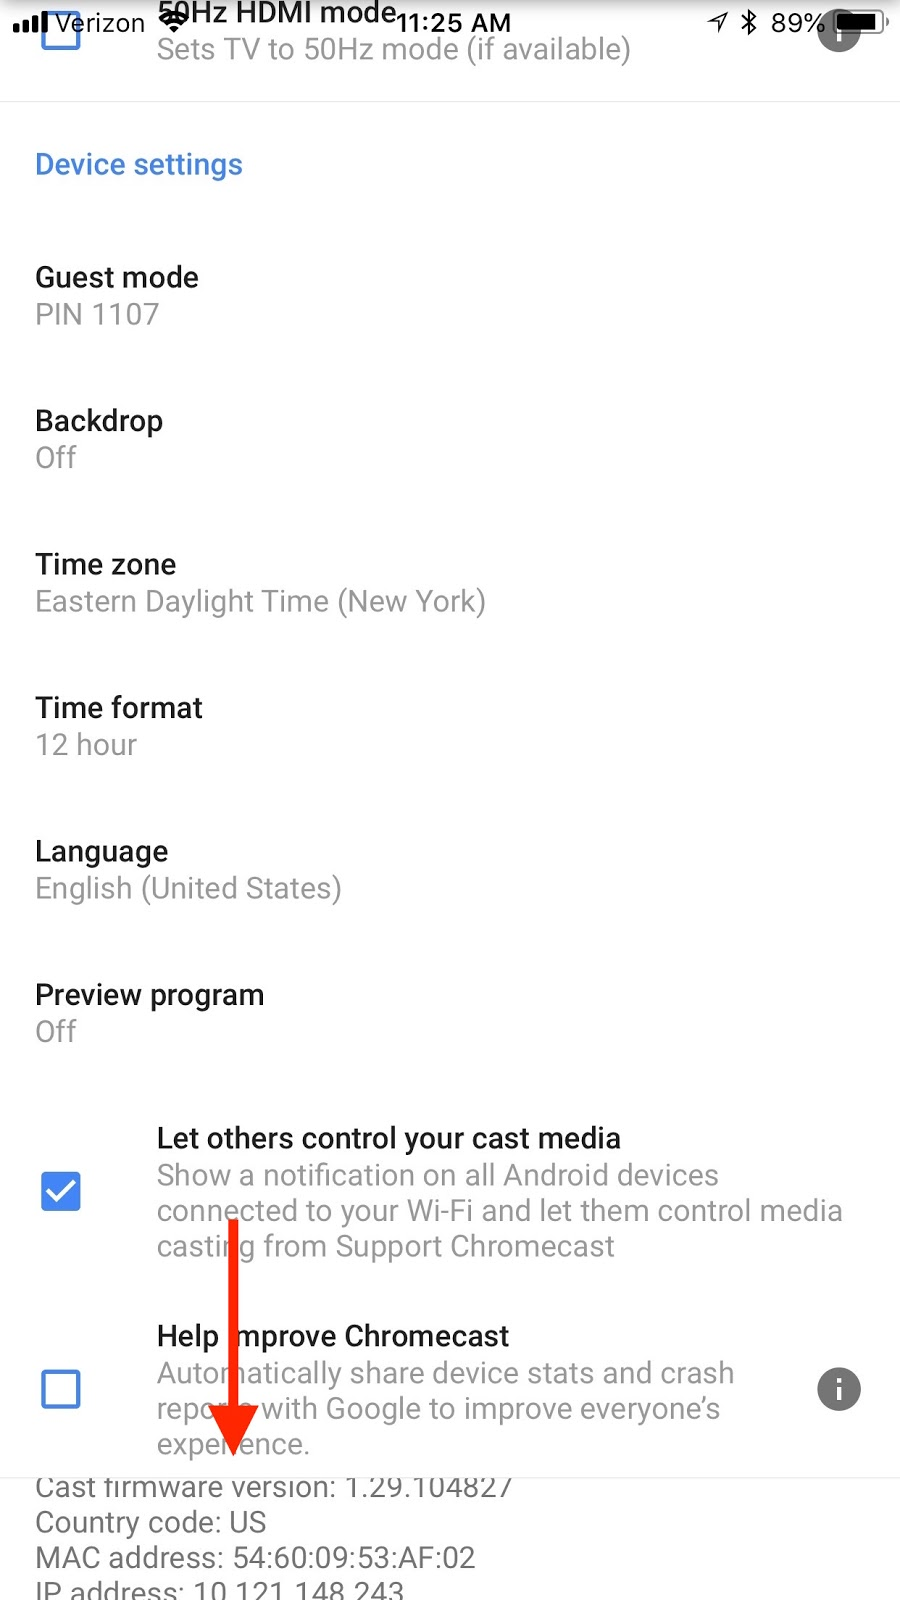 How to add a Ditto Receiver — Chromecast : Ditto